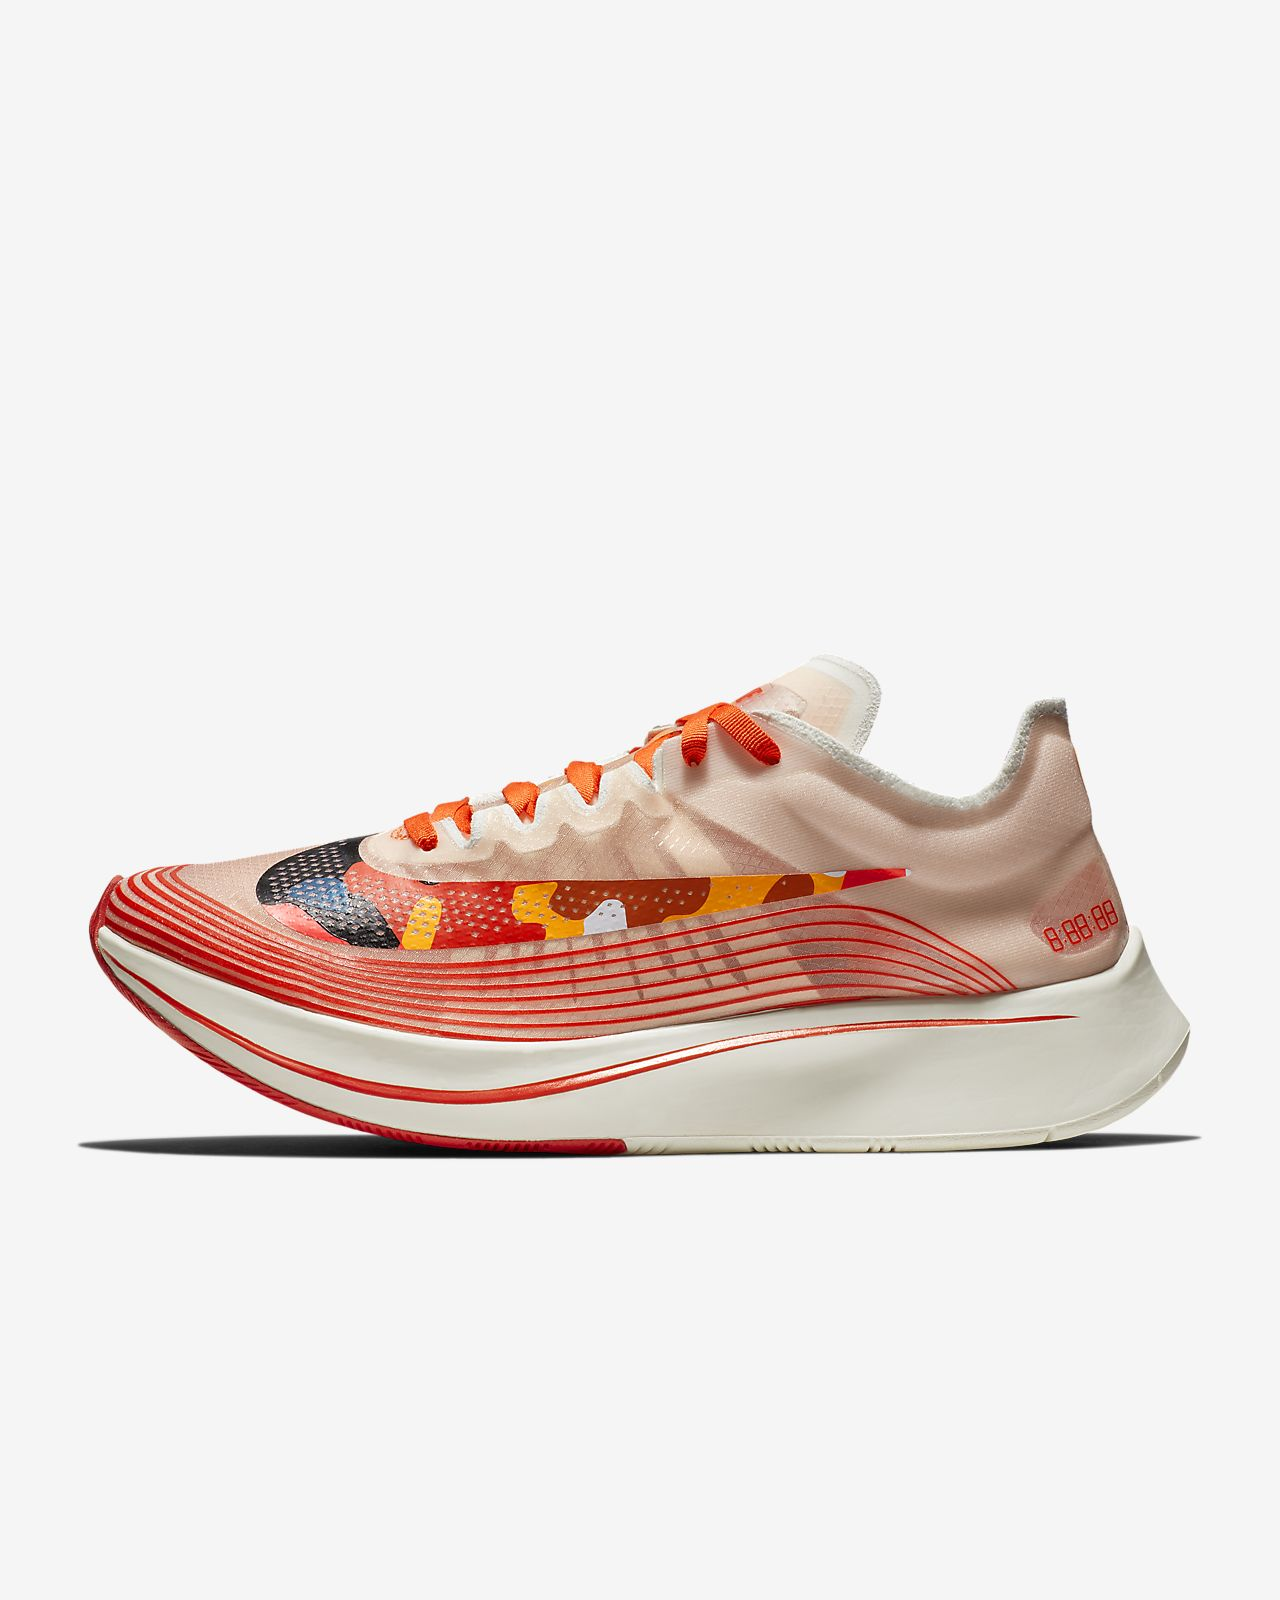 cac36c3dfb22f9 Nike Zoom Fly SP Men s Running Shoe. Nike.com